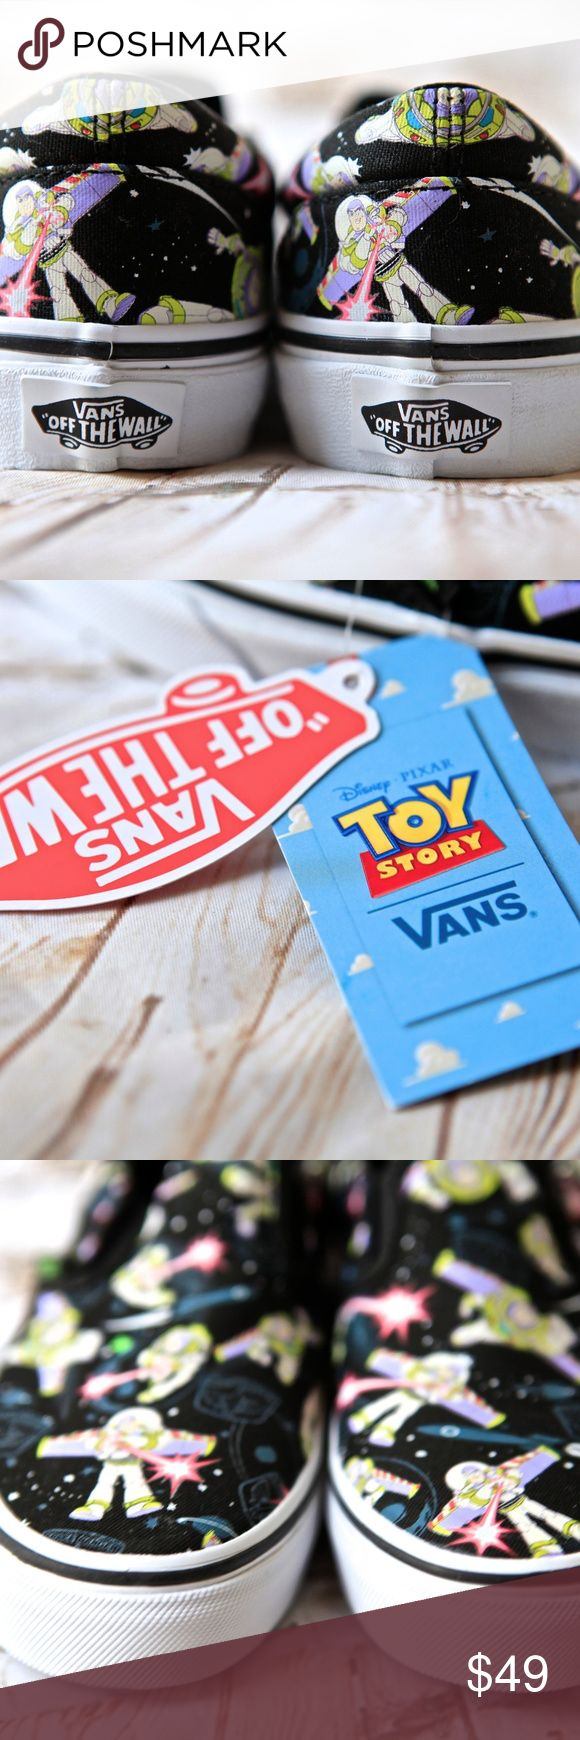 New DIsney Pixar Toy Story Bzz Slip on Kids Vans New DIsney Pixar Toy Story Bzz Slip on Kids Vans Limited Edition Size 3.0 In collaboration with Disney Pixar, Vans presents the Toy Story collection featuring Buzz Lightyear and the gang. Brand new with Tags. Perfect for back to school shoes 2017! Vans Shoes